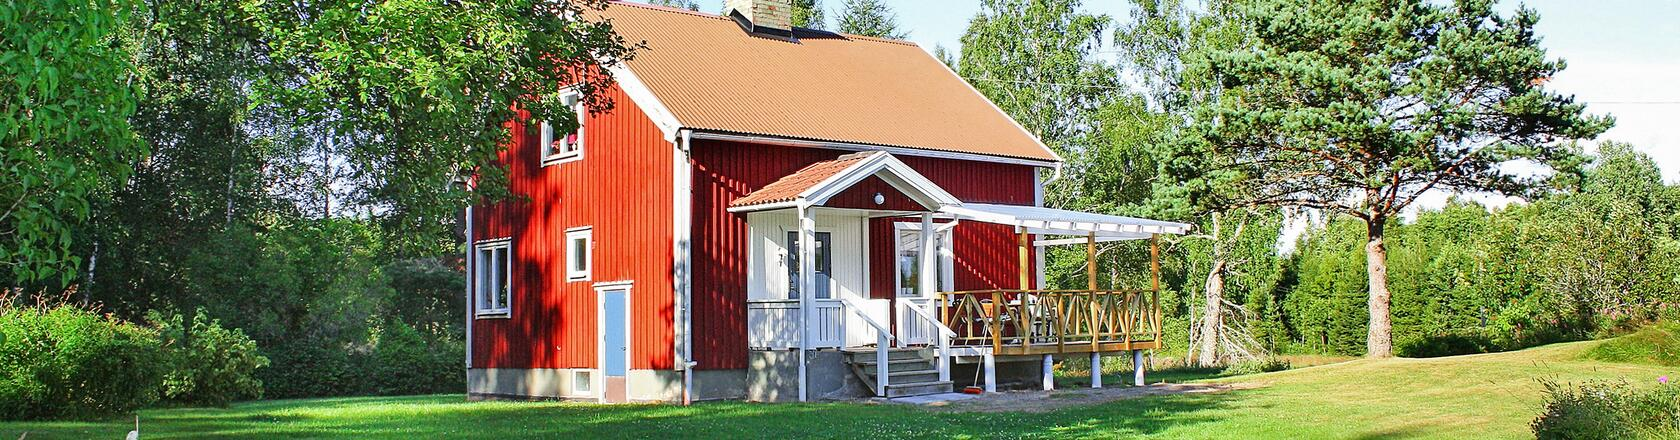 Källtegen in Sweden - Rent a holiday home  with DanCenter